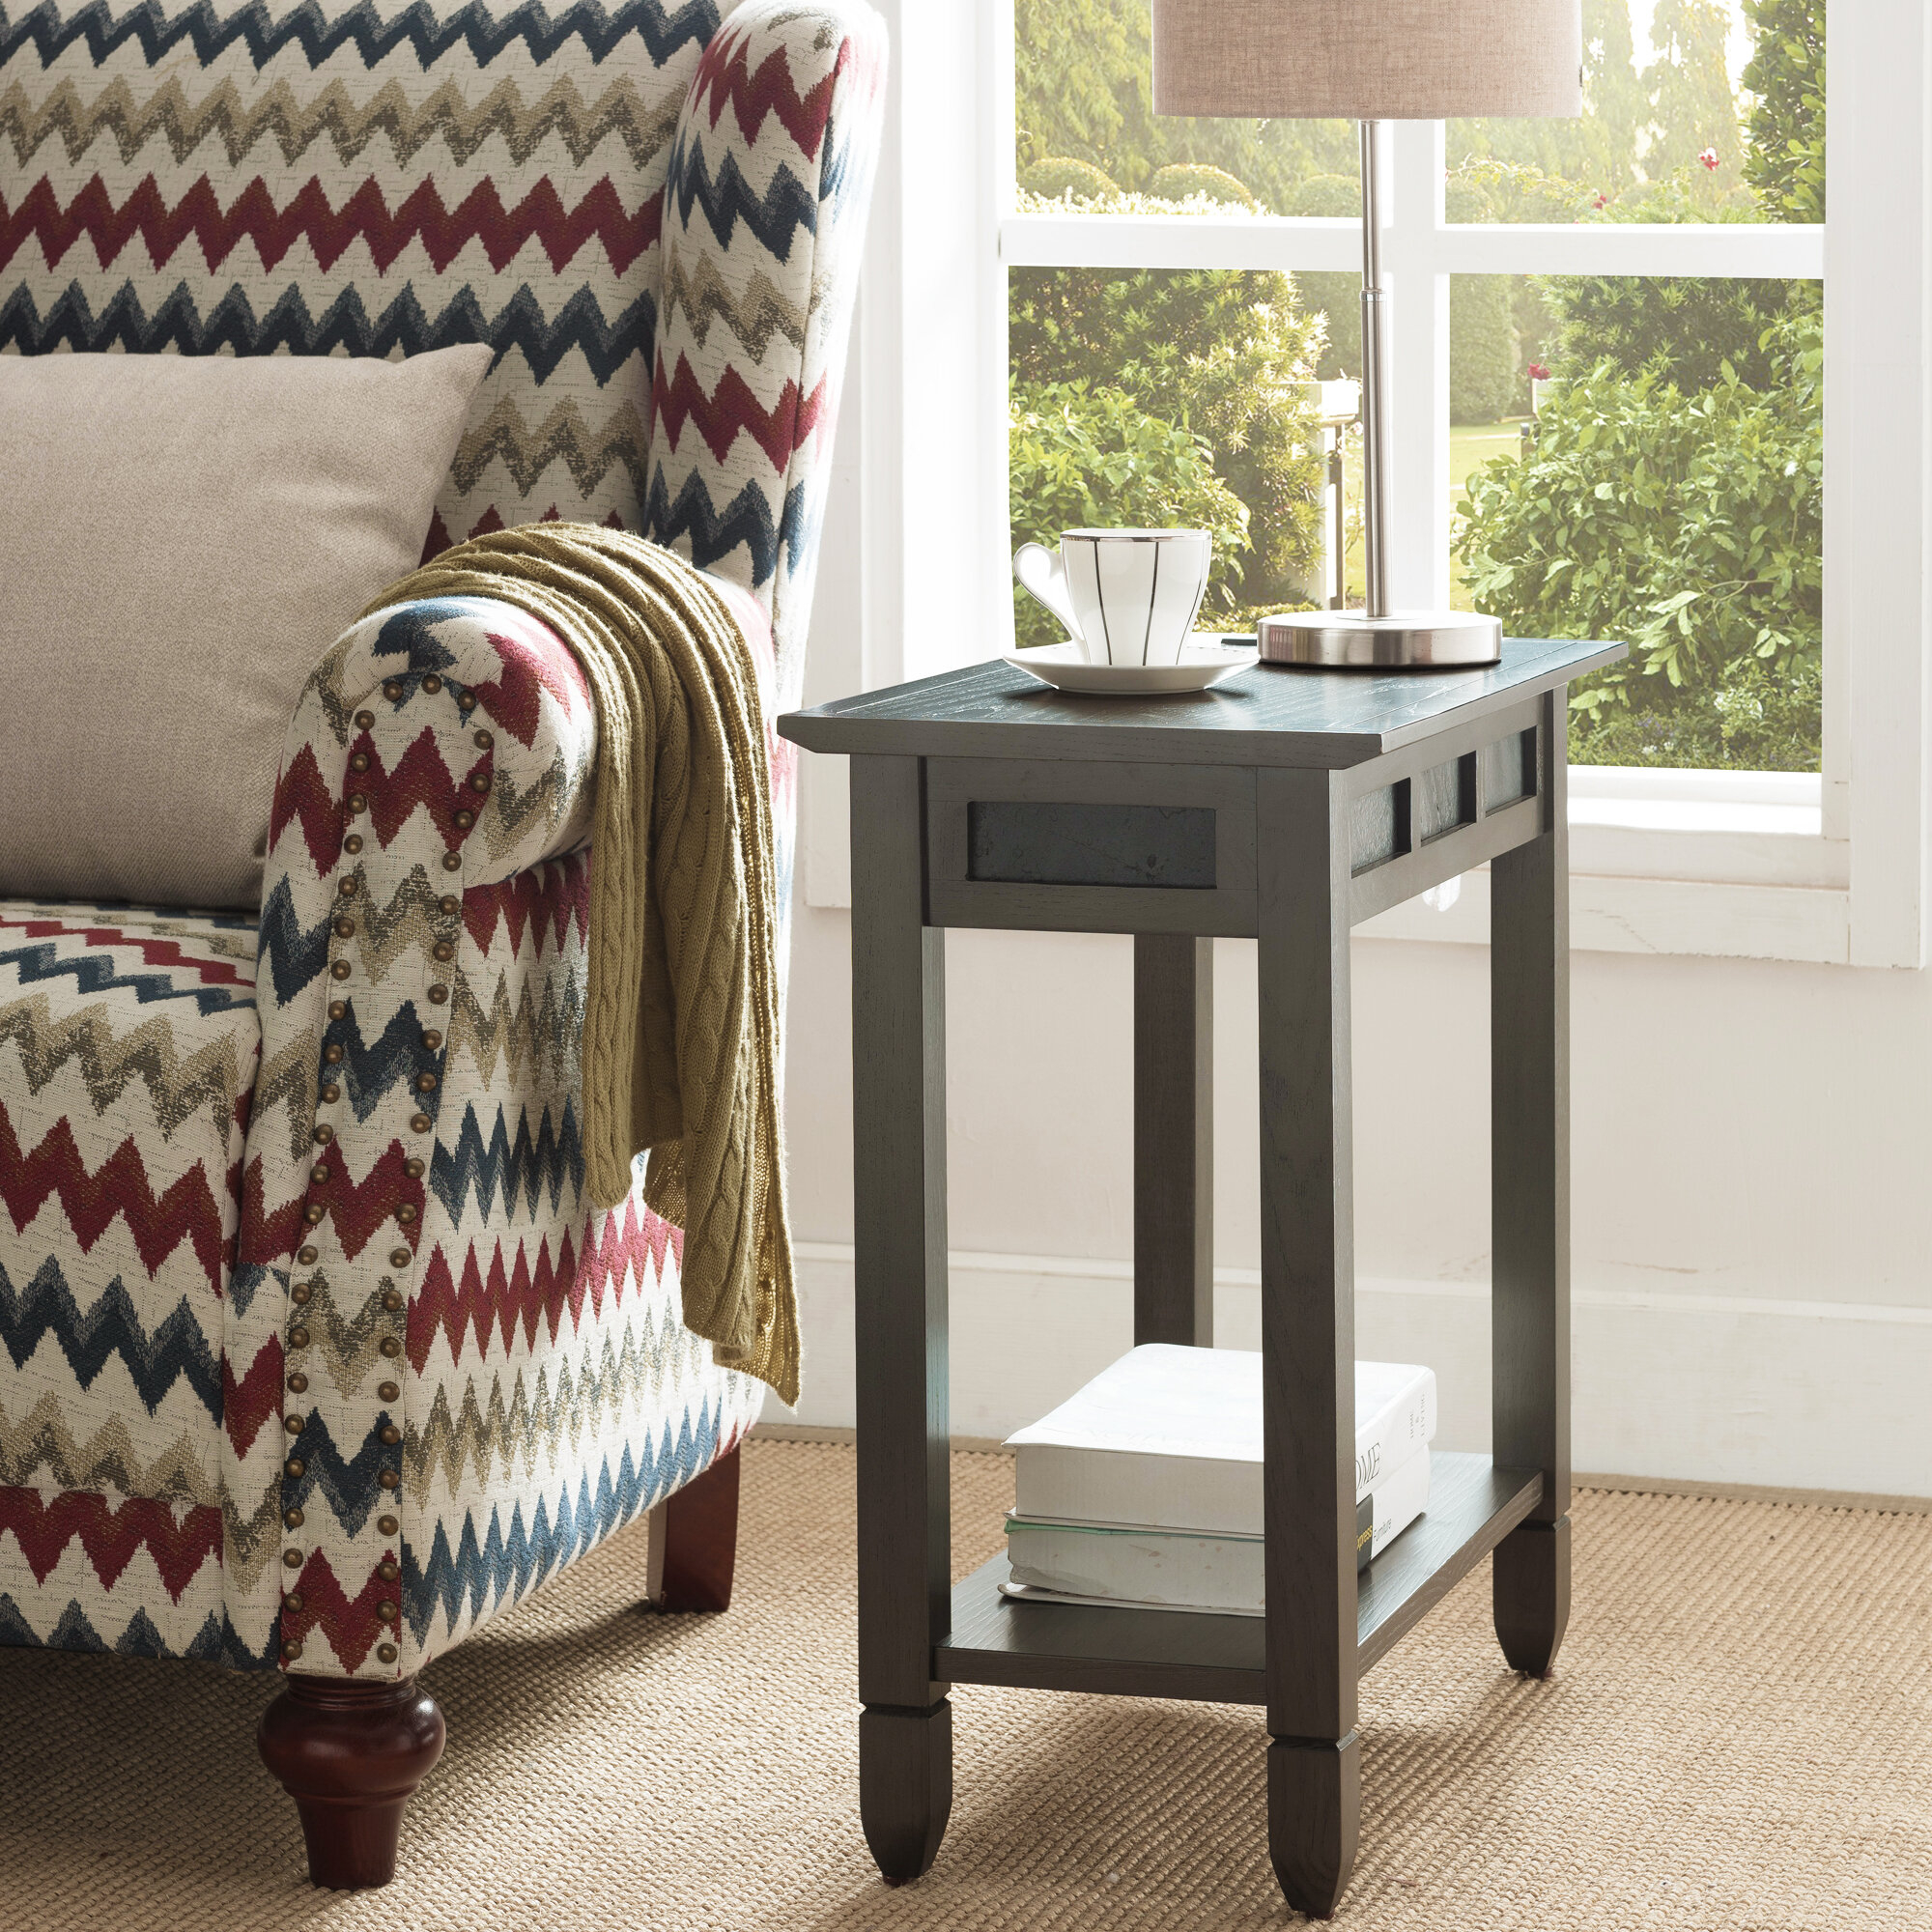 End Table With Charging Station You Ll Love In 2021 Visualhunt